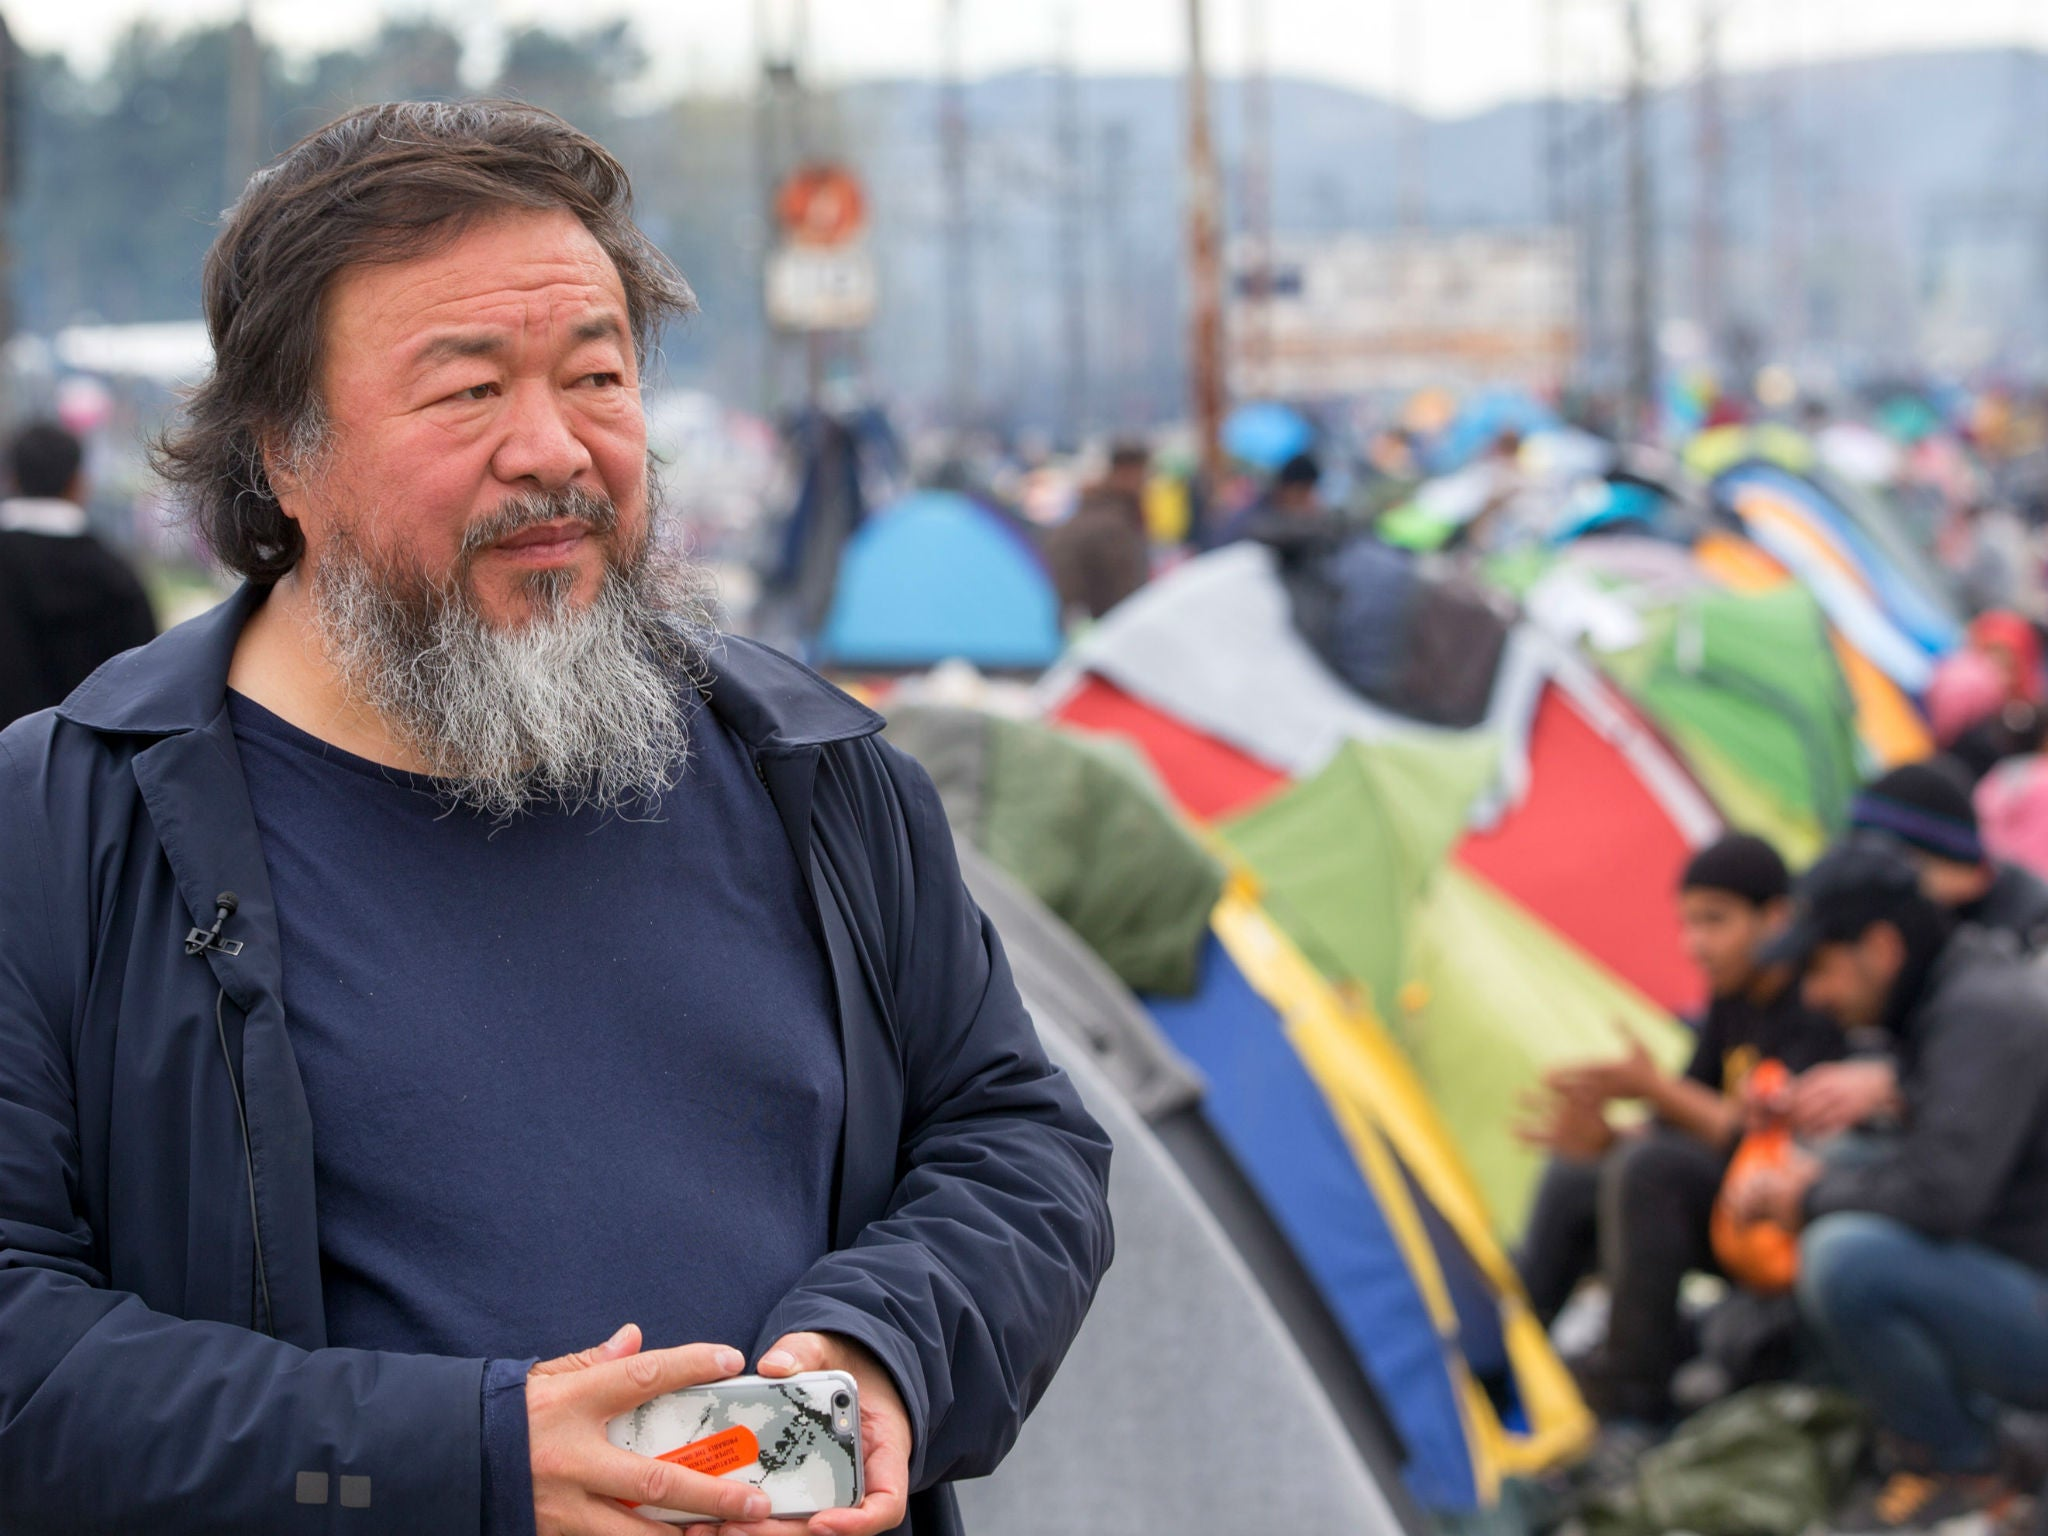 Ai Weiwei shoots 'over 600 hours' of footage for film about the refugee crisis